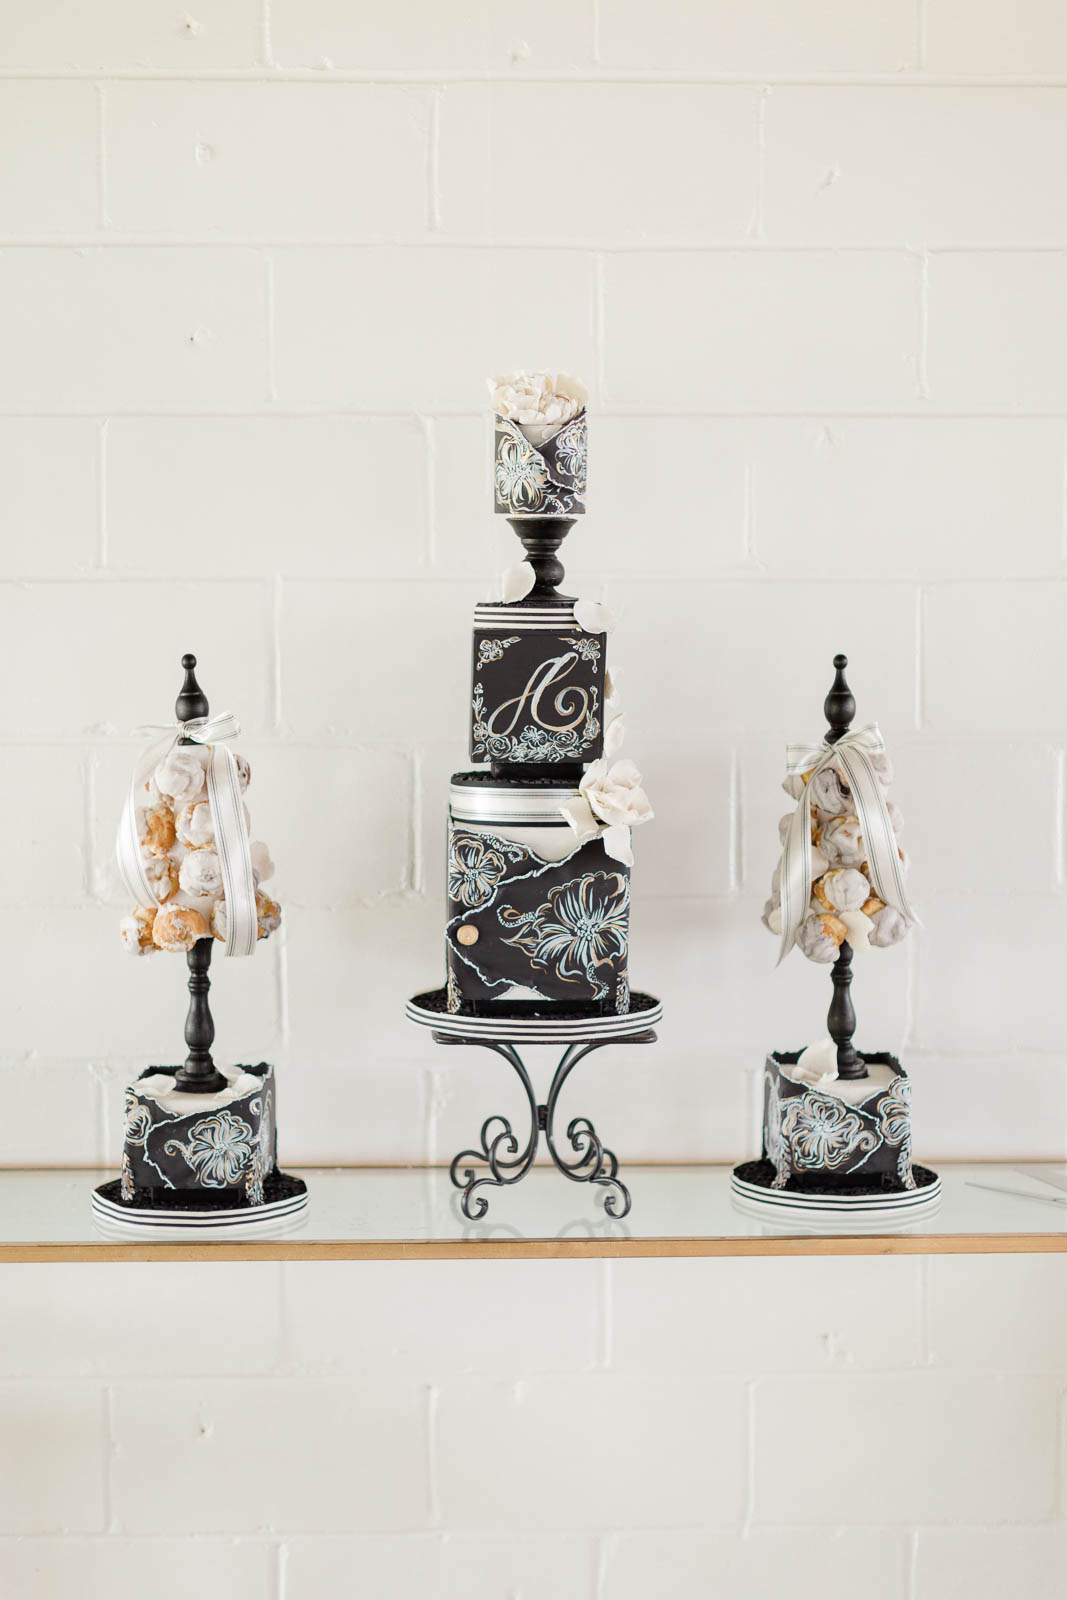 Three tiered black and white wedding cake with smaller wedding cakes next to it